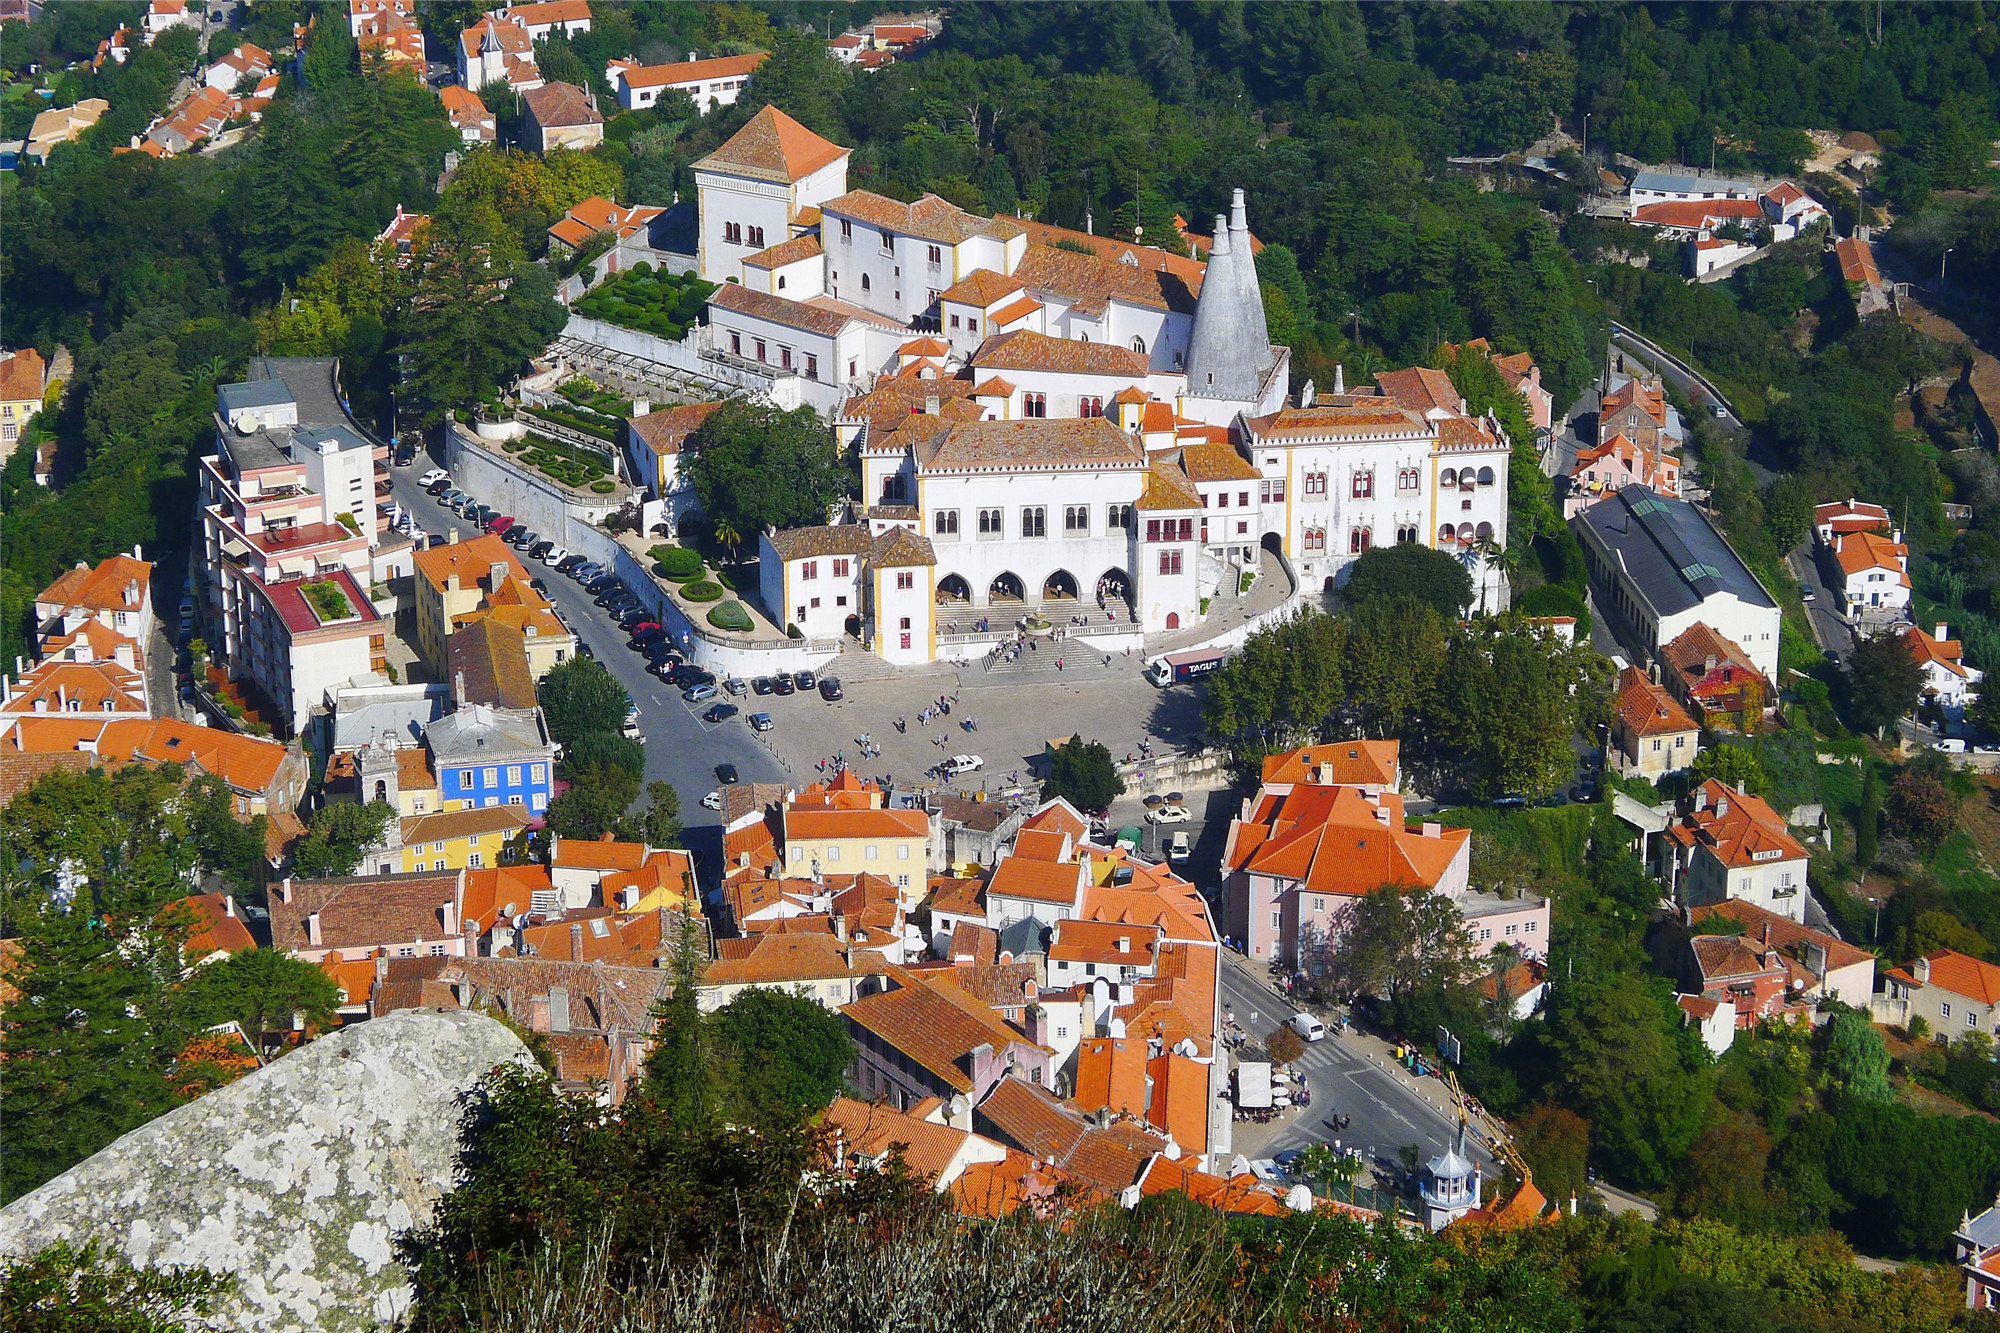 Sintra, Cabo da Roca, and Cascais Small Group Tour from Lisbon